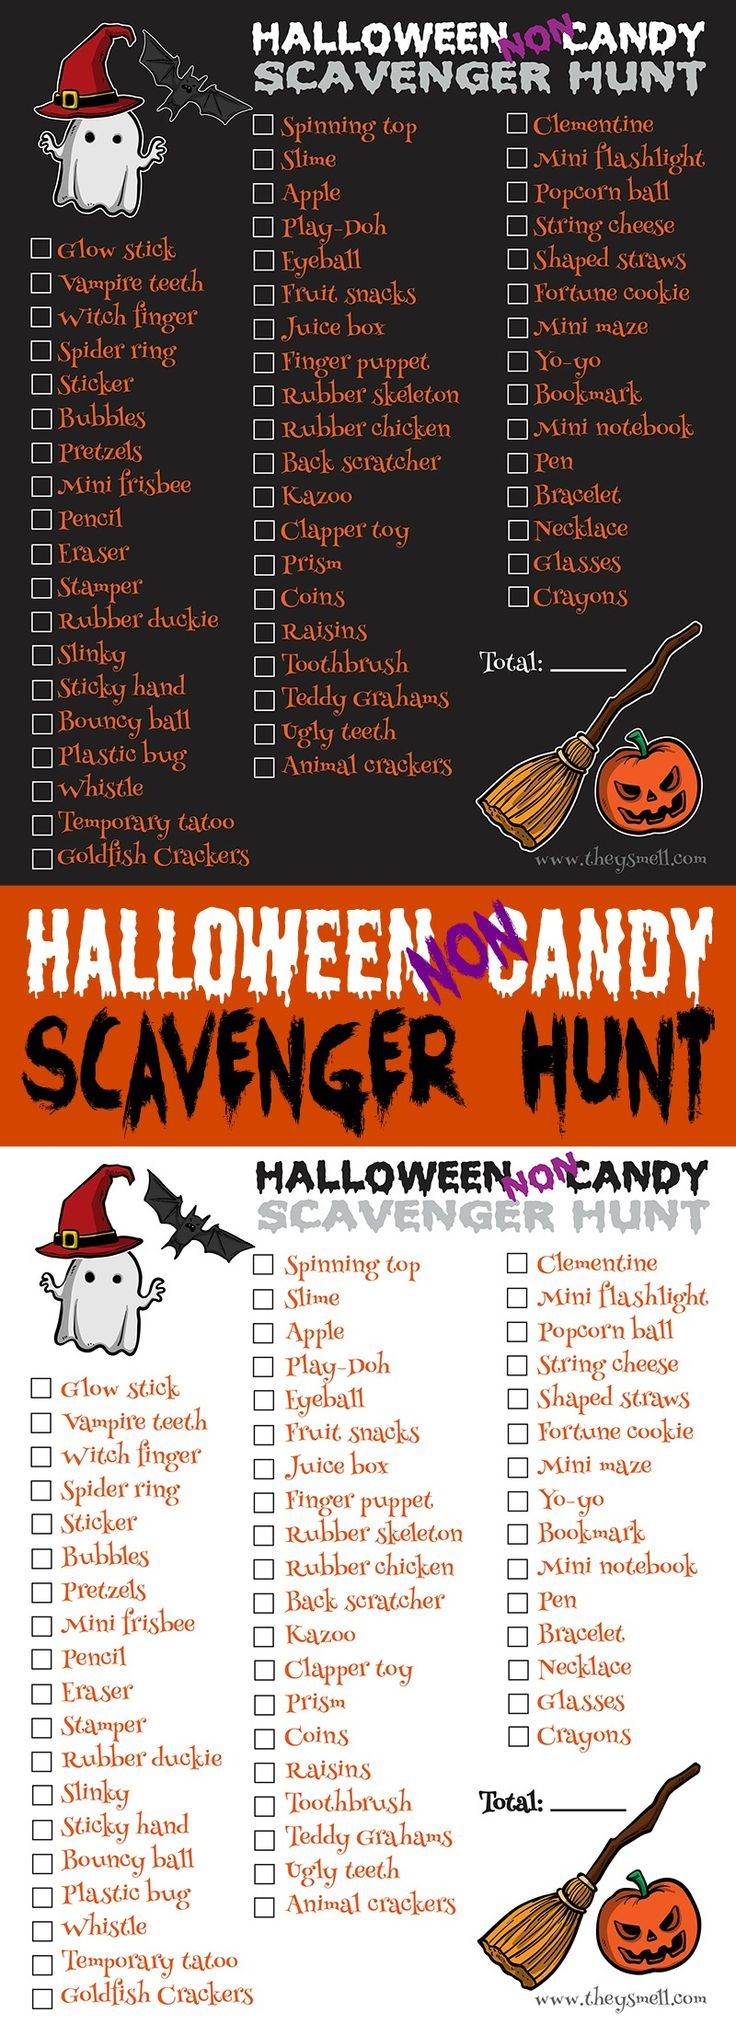 Halloween NON-Candy Scavenger Hunt Printable - take your Trick-Or-Treating, Trunk or Treat or other Halloween event to the next level with a fun scavenger hunt! They check off the boxes for each non-candy item they collected and the kid with the most boxes checked is the winner!